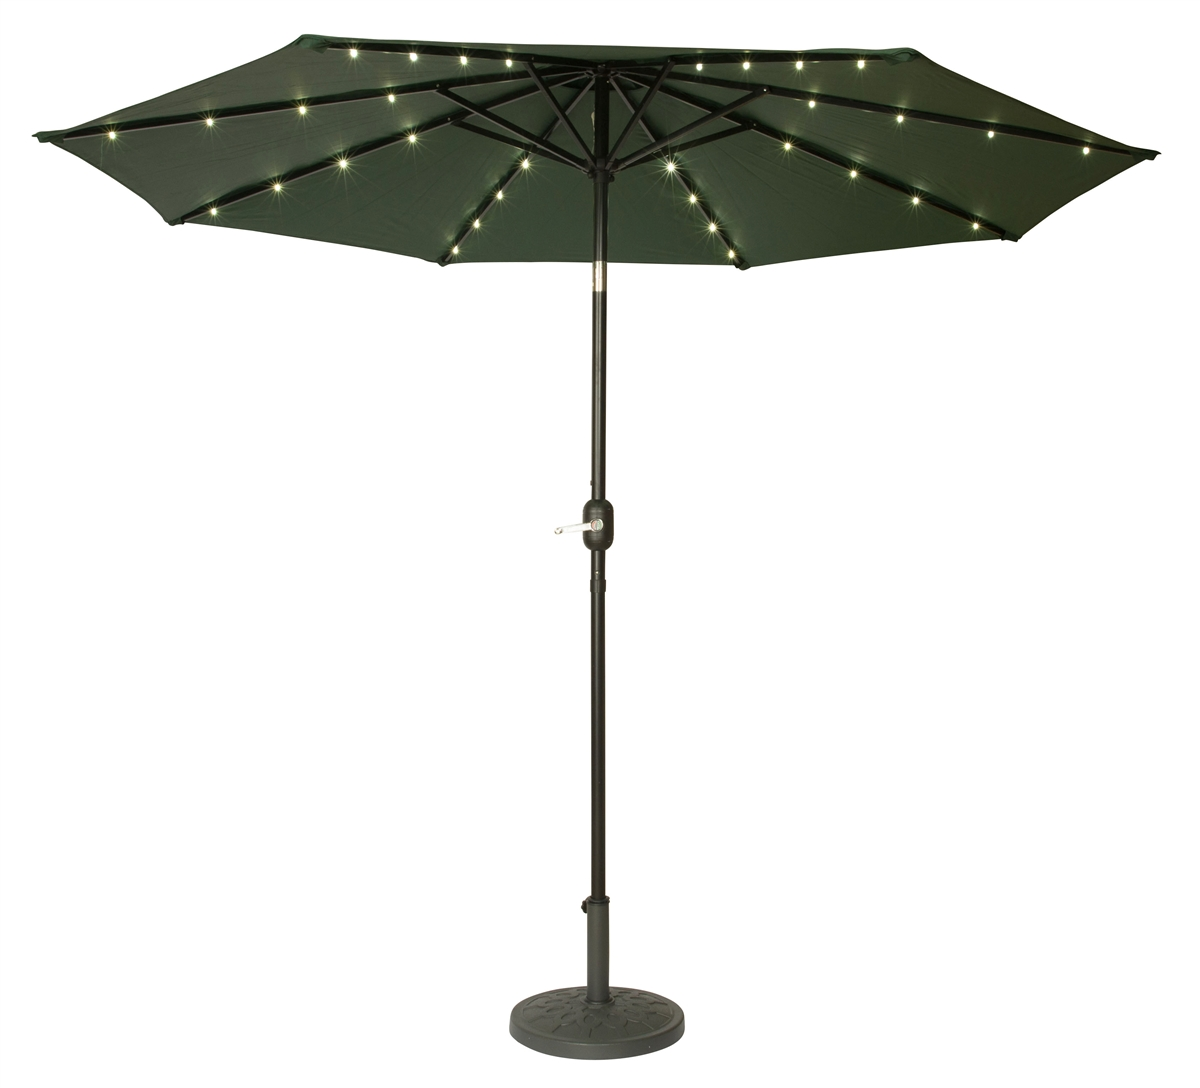 9 Deluxe Solar Powered Led Lighted Patio Umbrella By Trademark Innovations Green